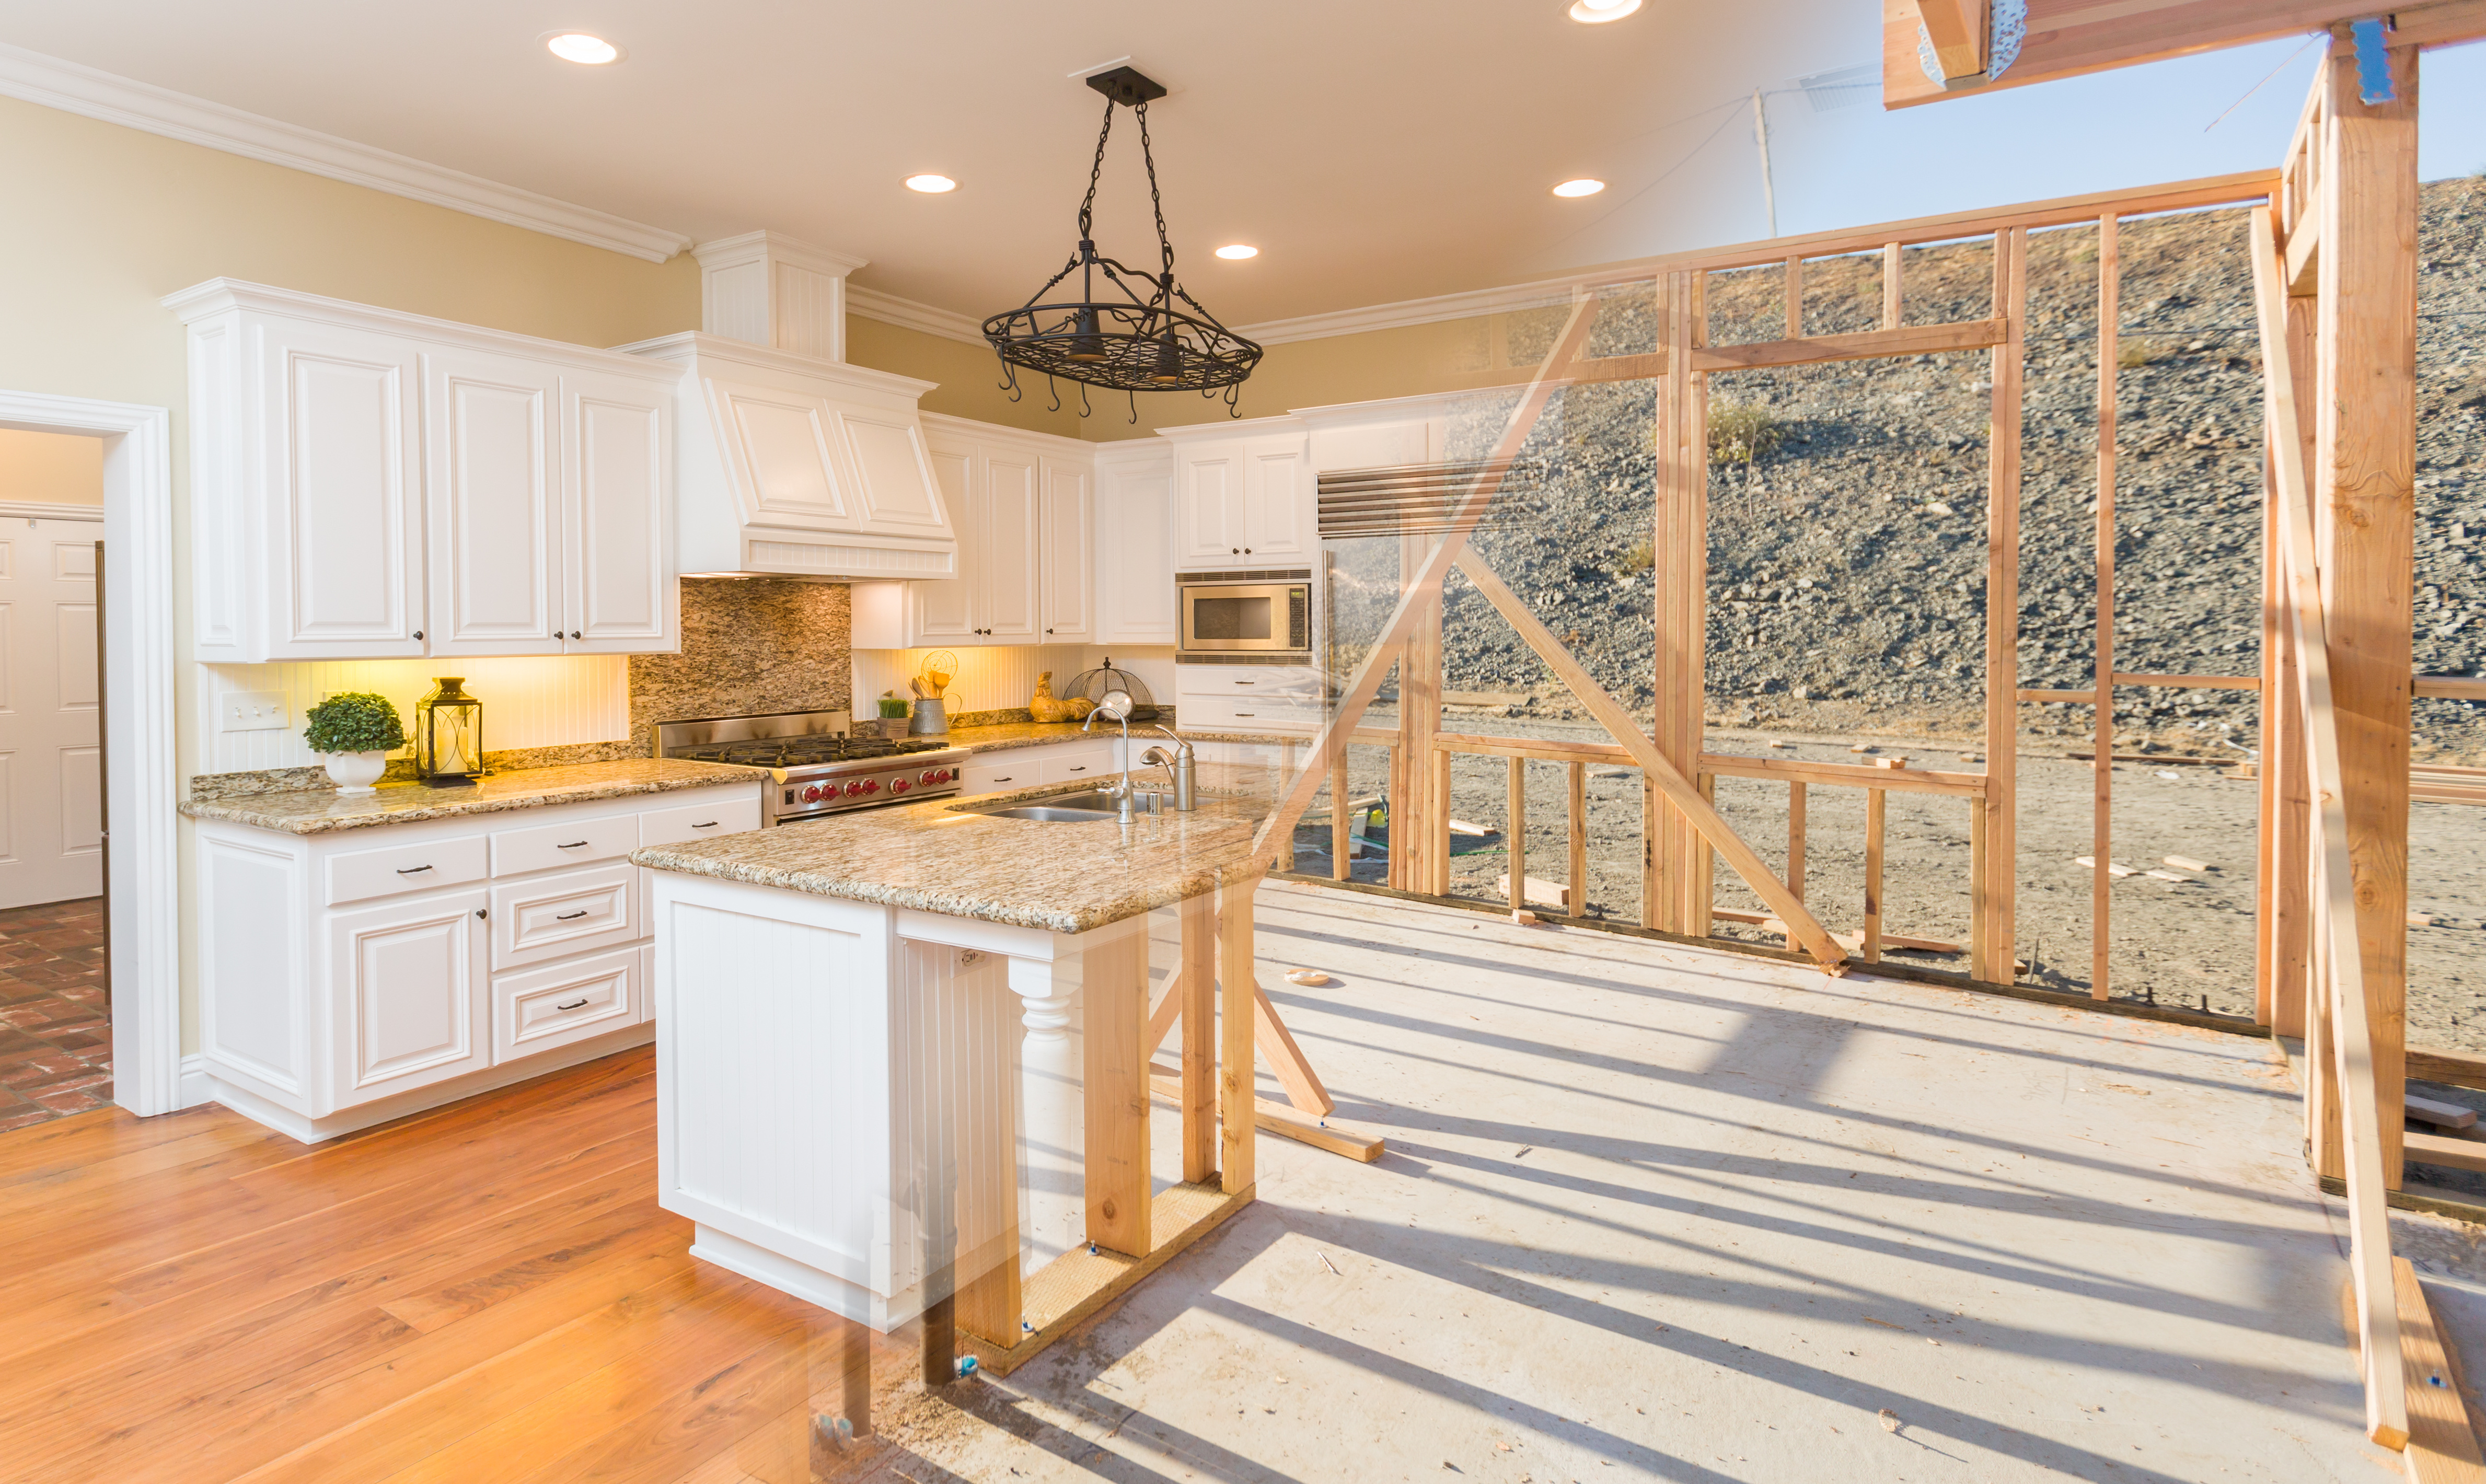 Differences between types of wood used in kitchen for Types of wood cabinets for kitchen